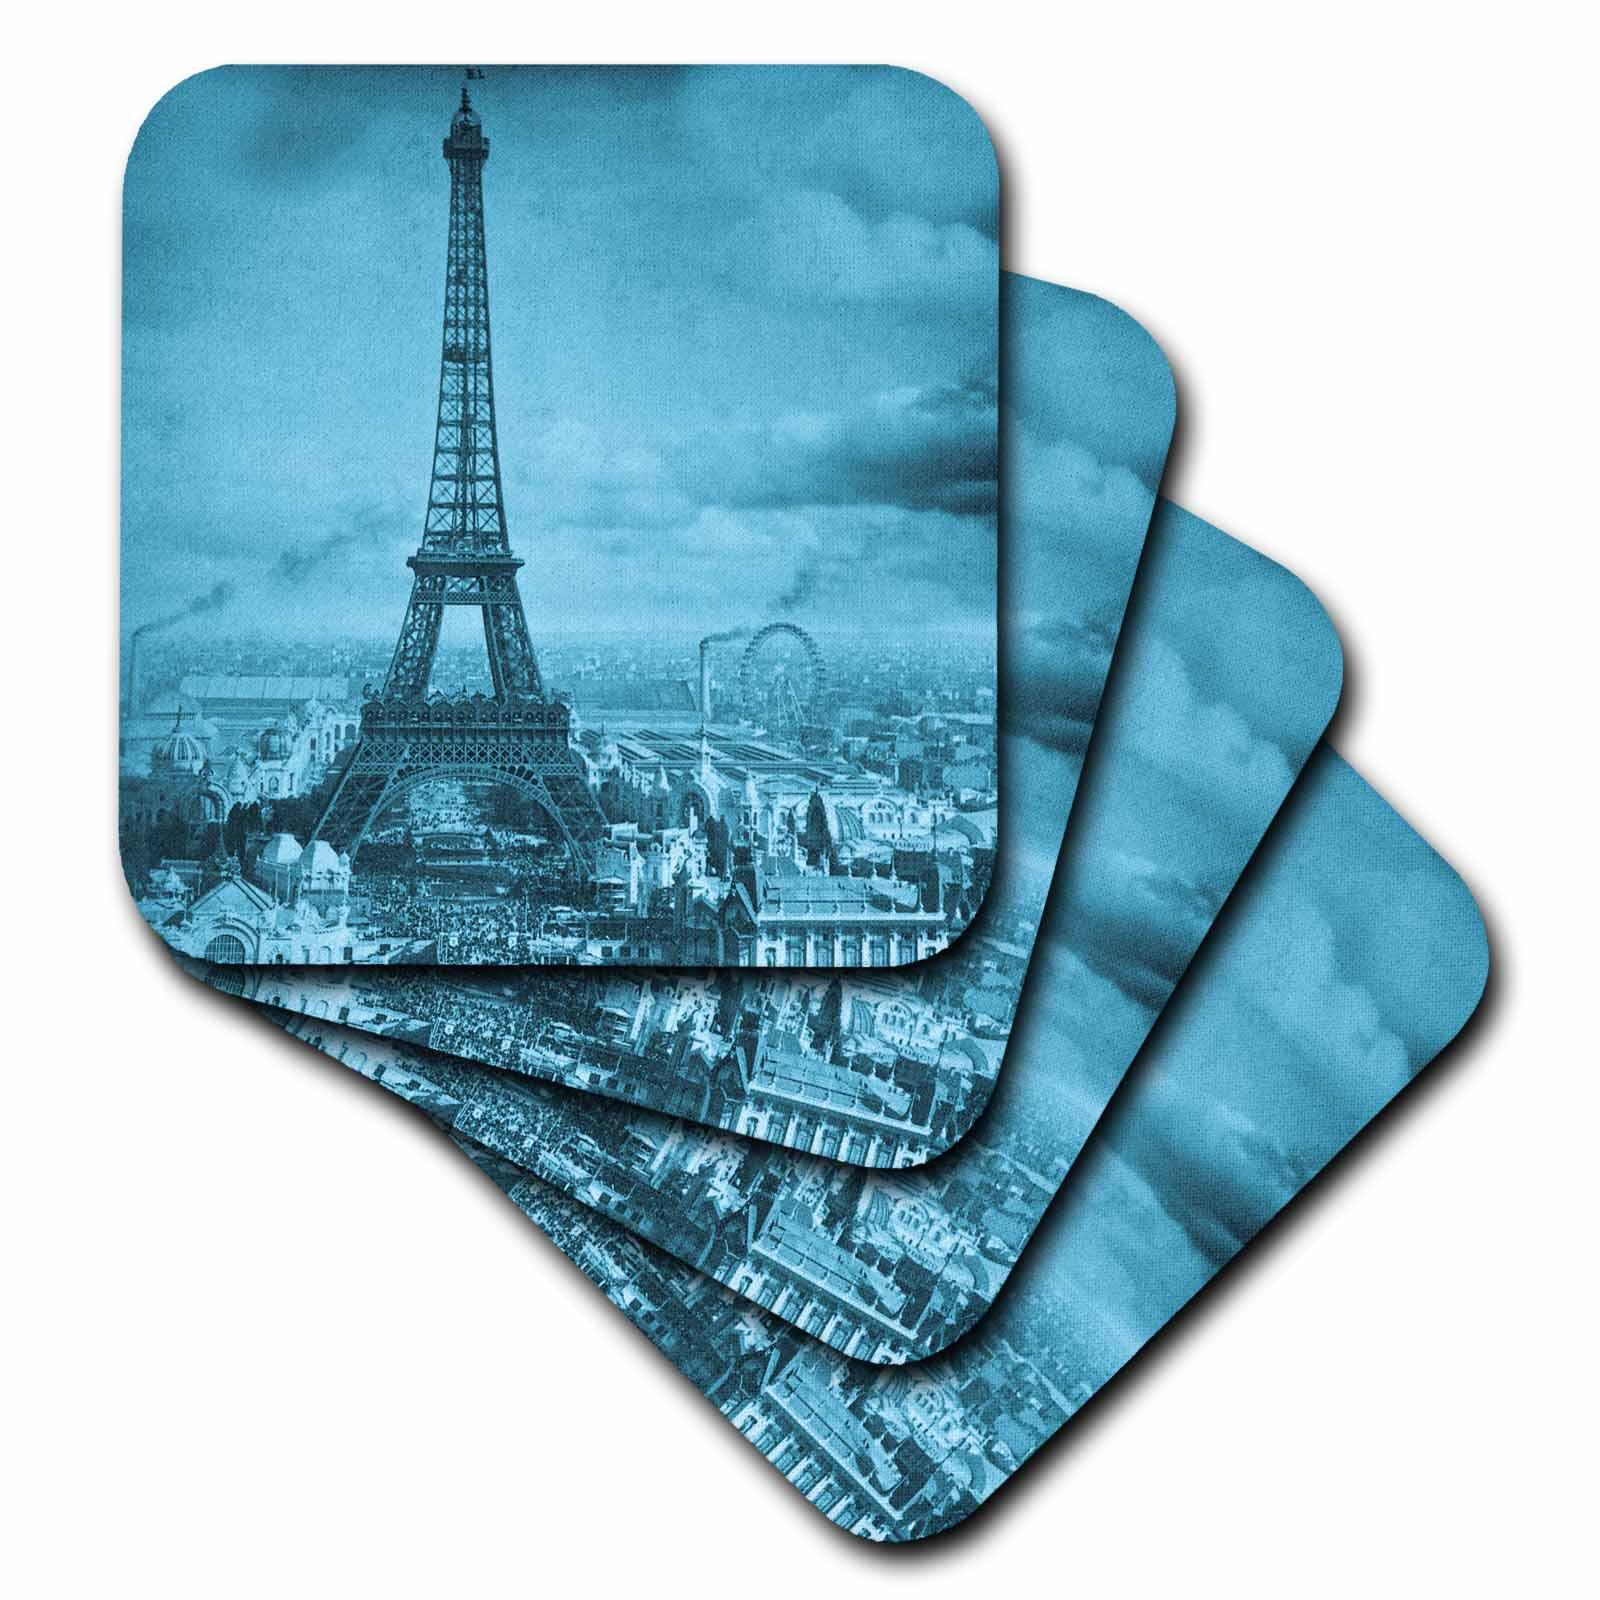 3dRose Eiffel Tower  Paris  France, 1889 Cyan, Ceramic Tile Coasters, set of 4